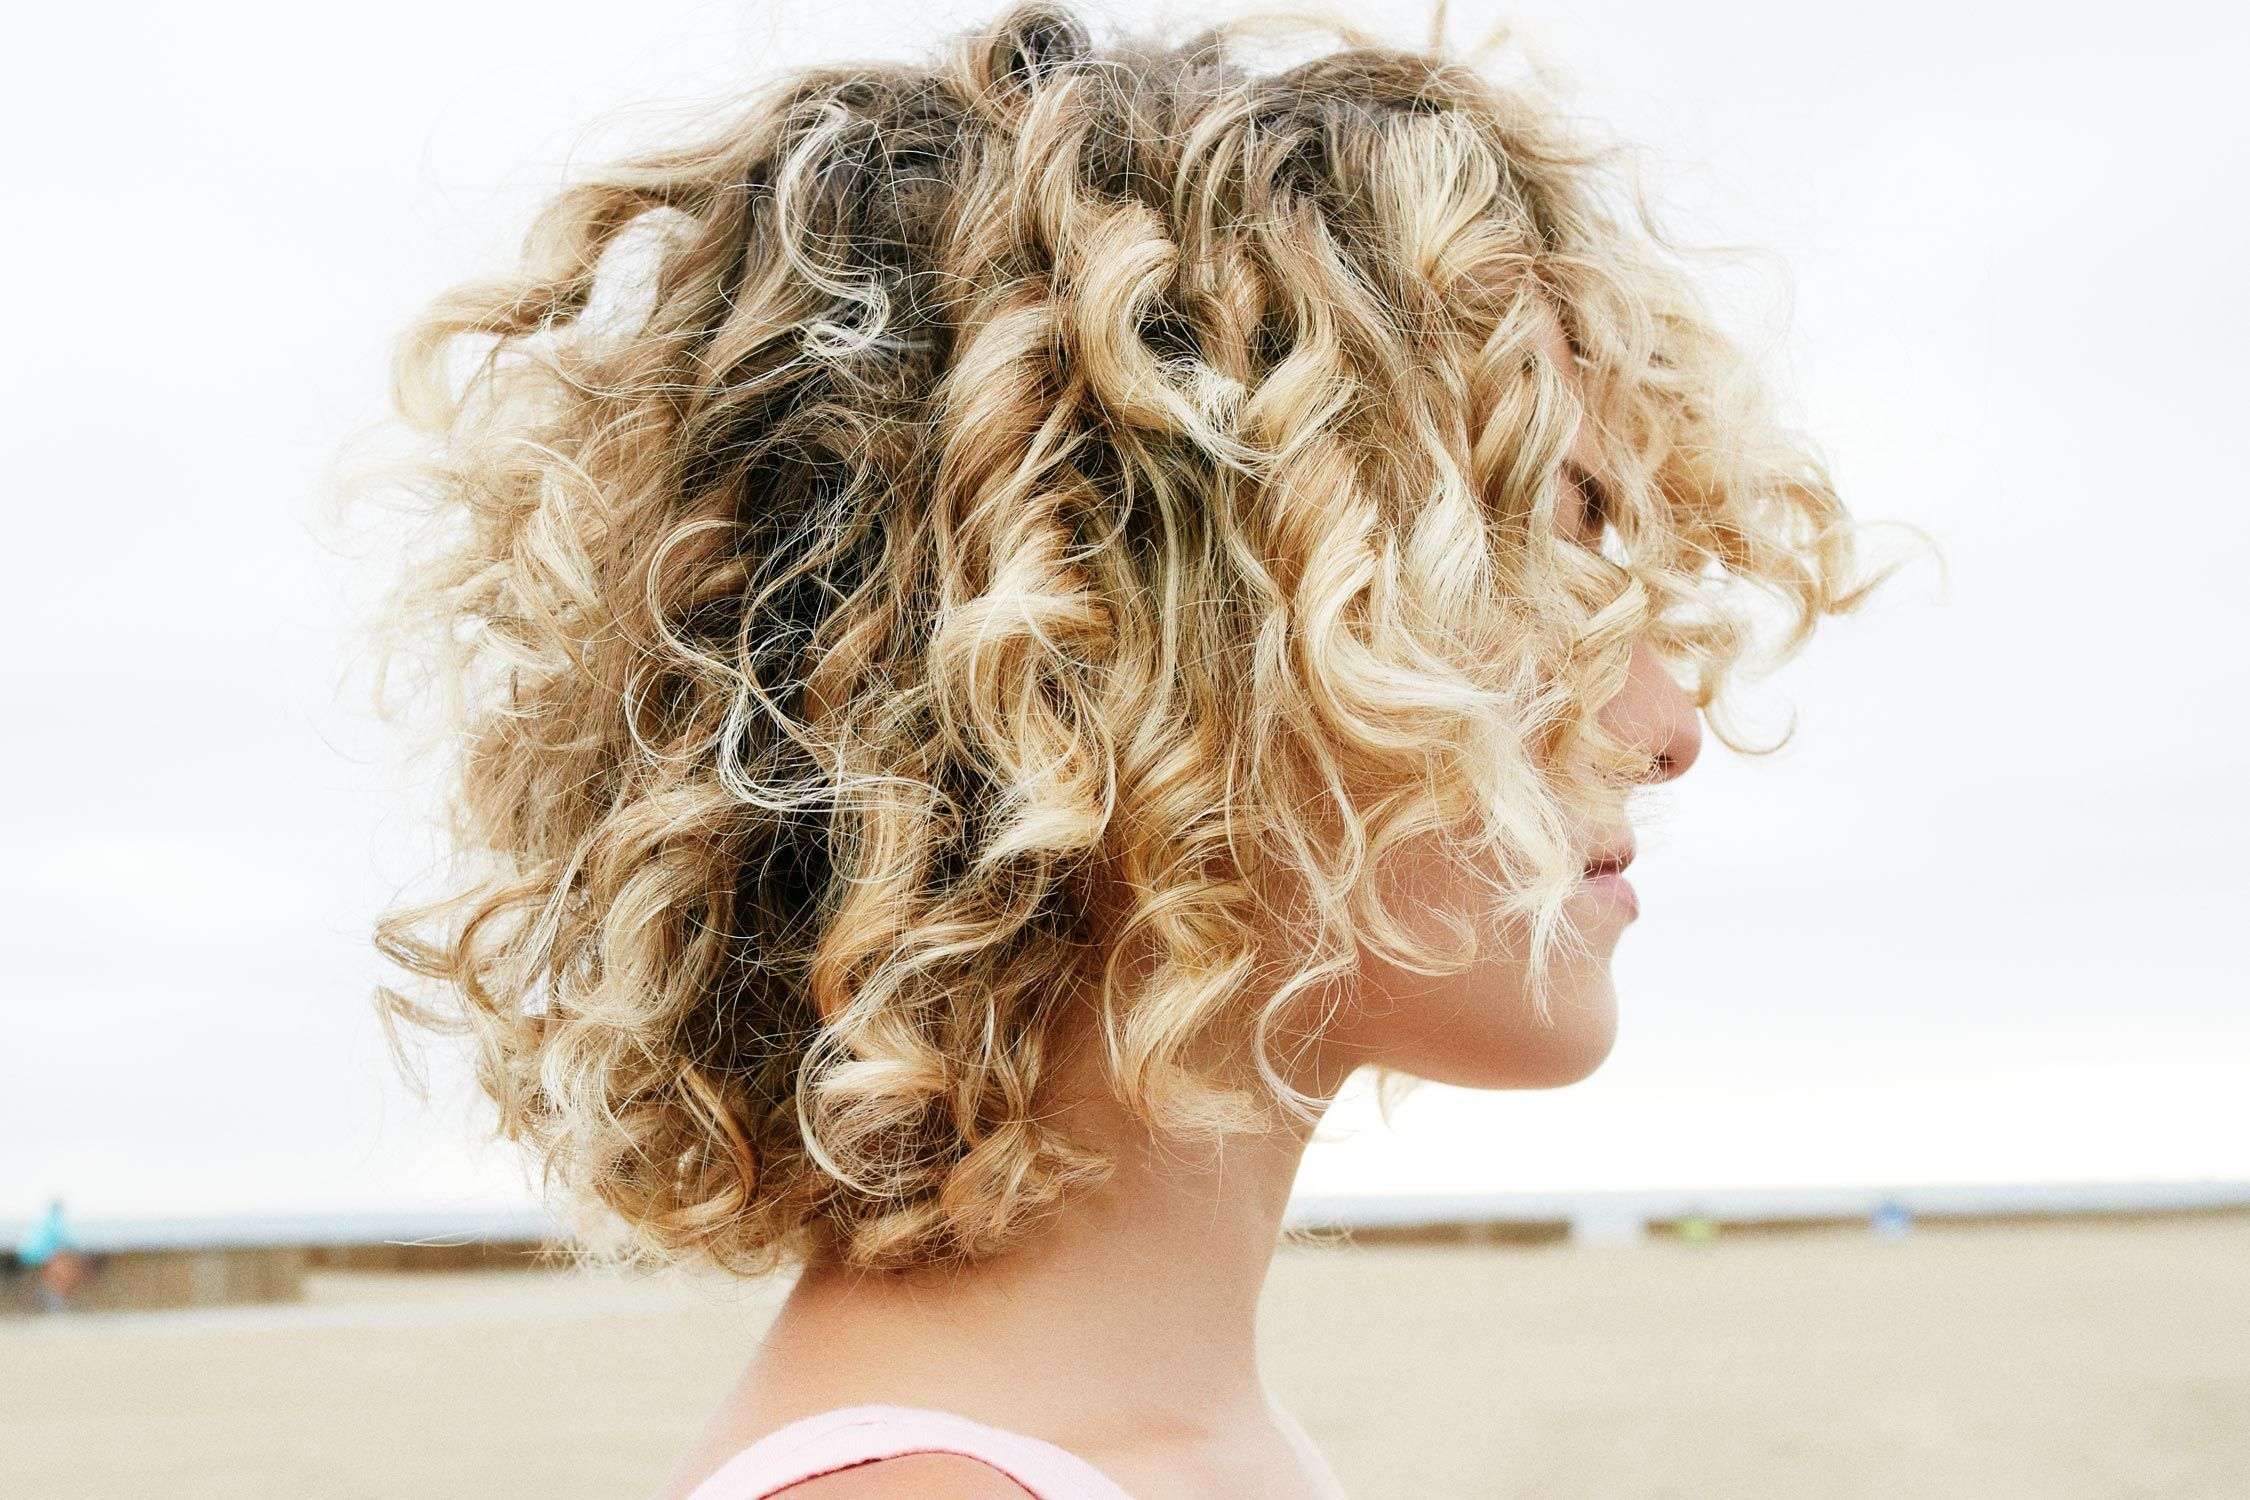 Want To Perm Your Hair Follow These Tips For Curls You Ll Love Permed Hairstyles Short Permed Hair Hair Lengths